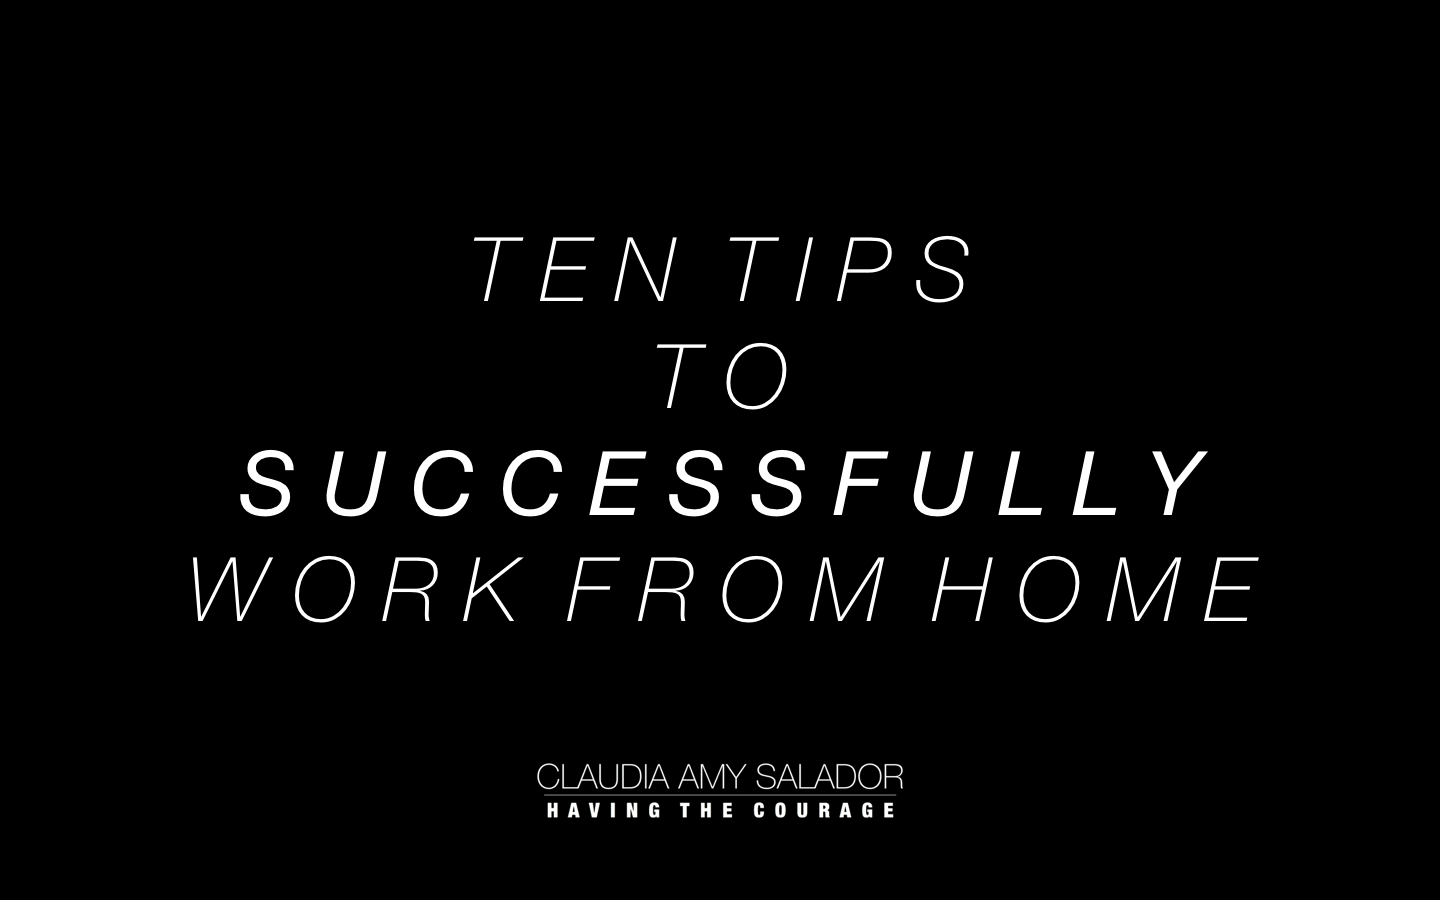 25/3/19    'Ten Tips To Successfully Work From Home'